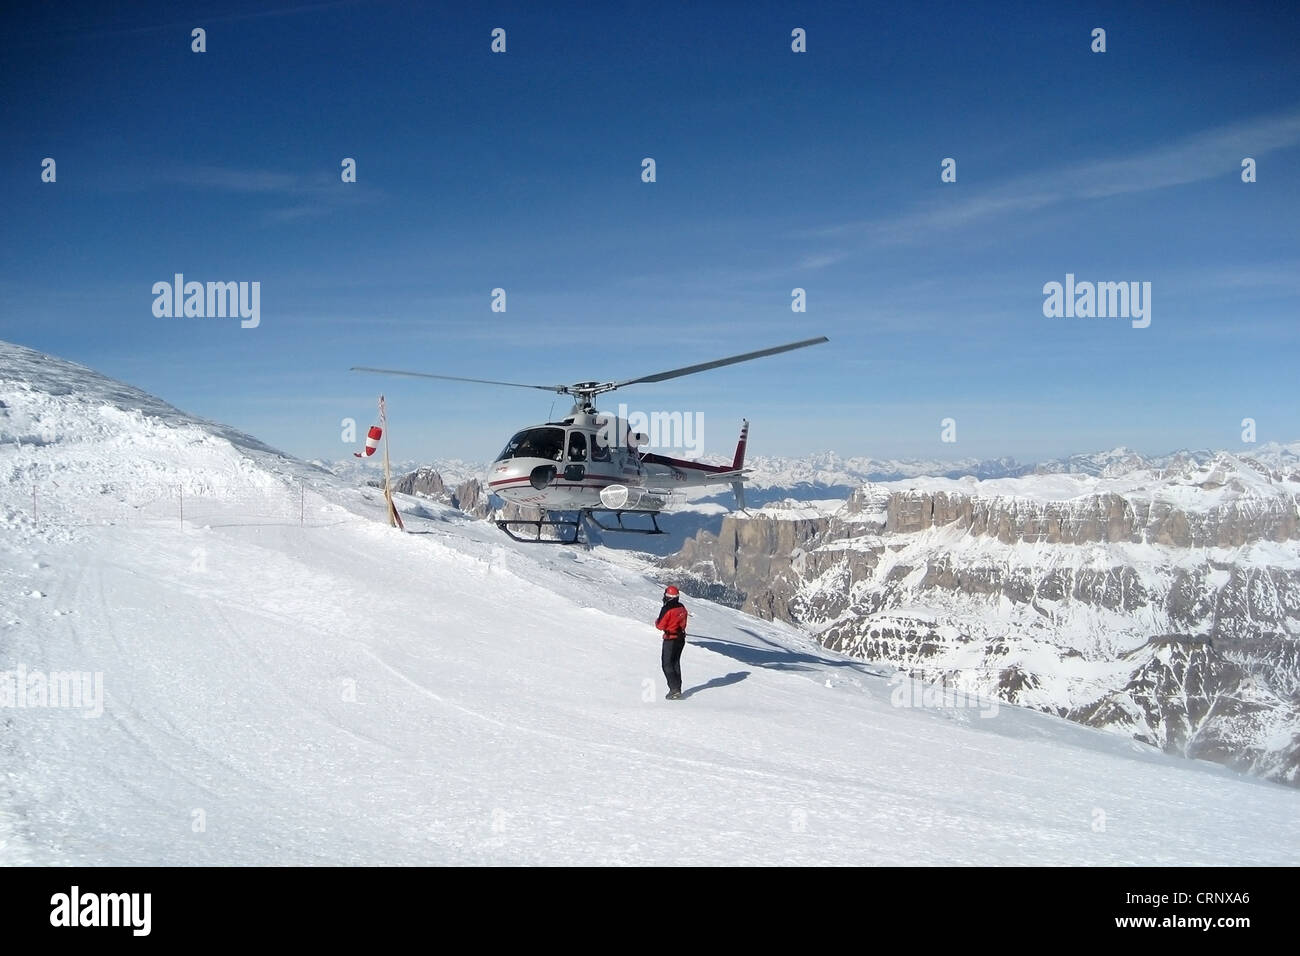 A helicopter landing on a mountain - Stock Image